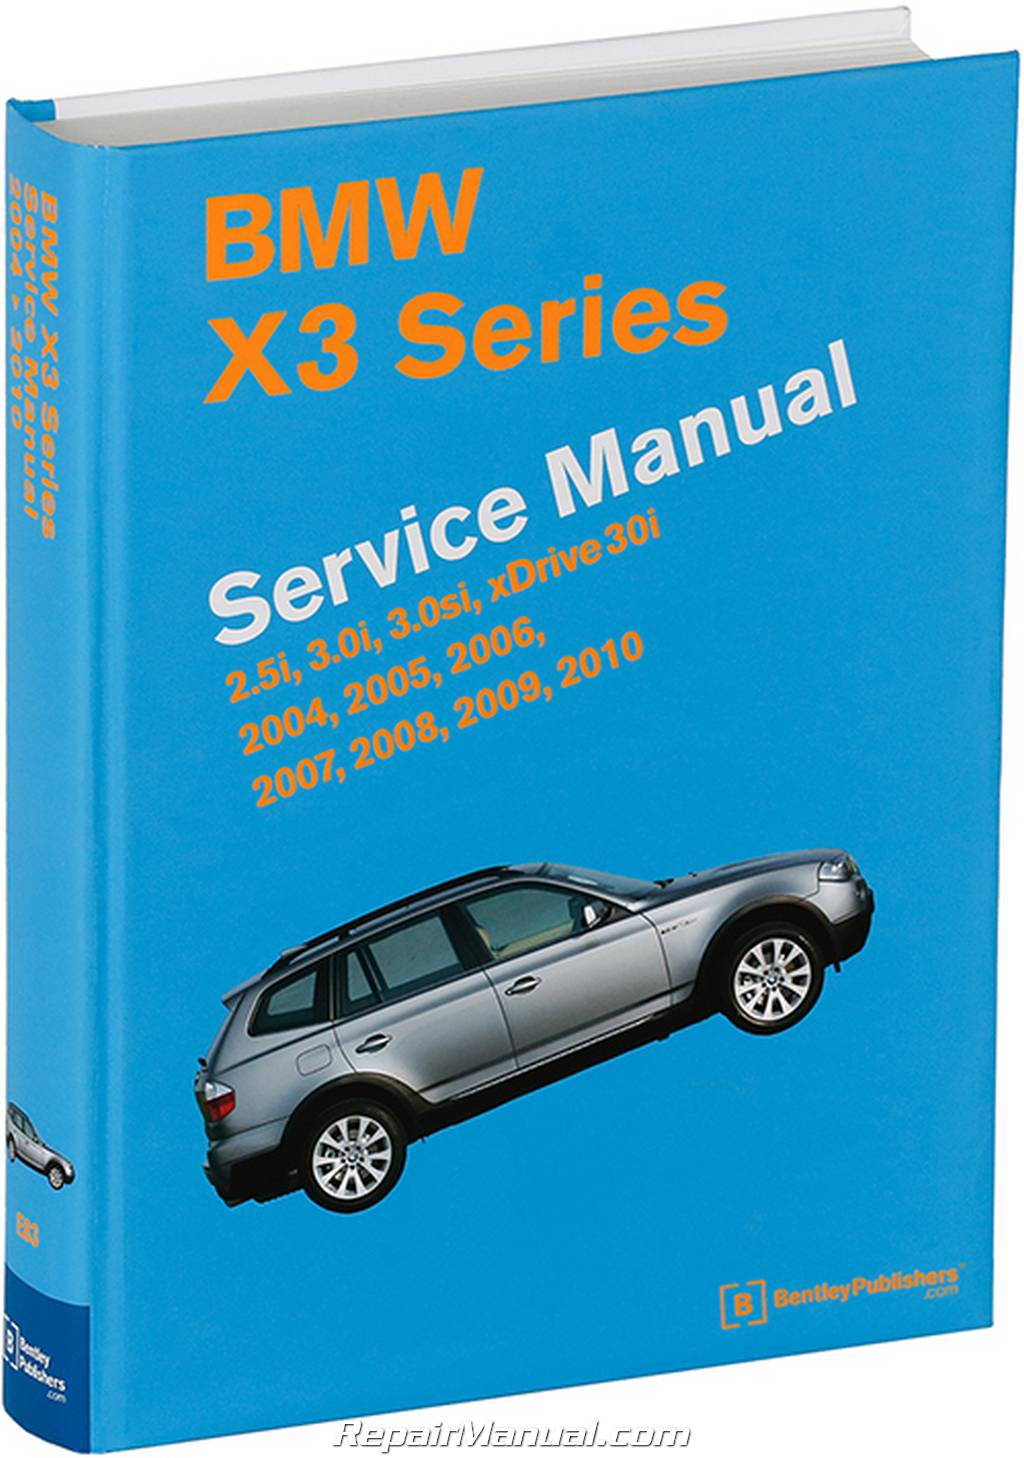 bmw x3 m54 n52 engines printed service manual 2004 2010 rh repairmanual com 2009 BMW Premium Package Includes 2009 BMW